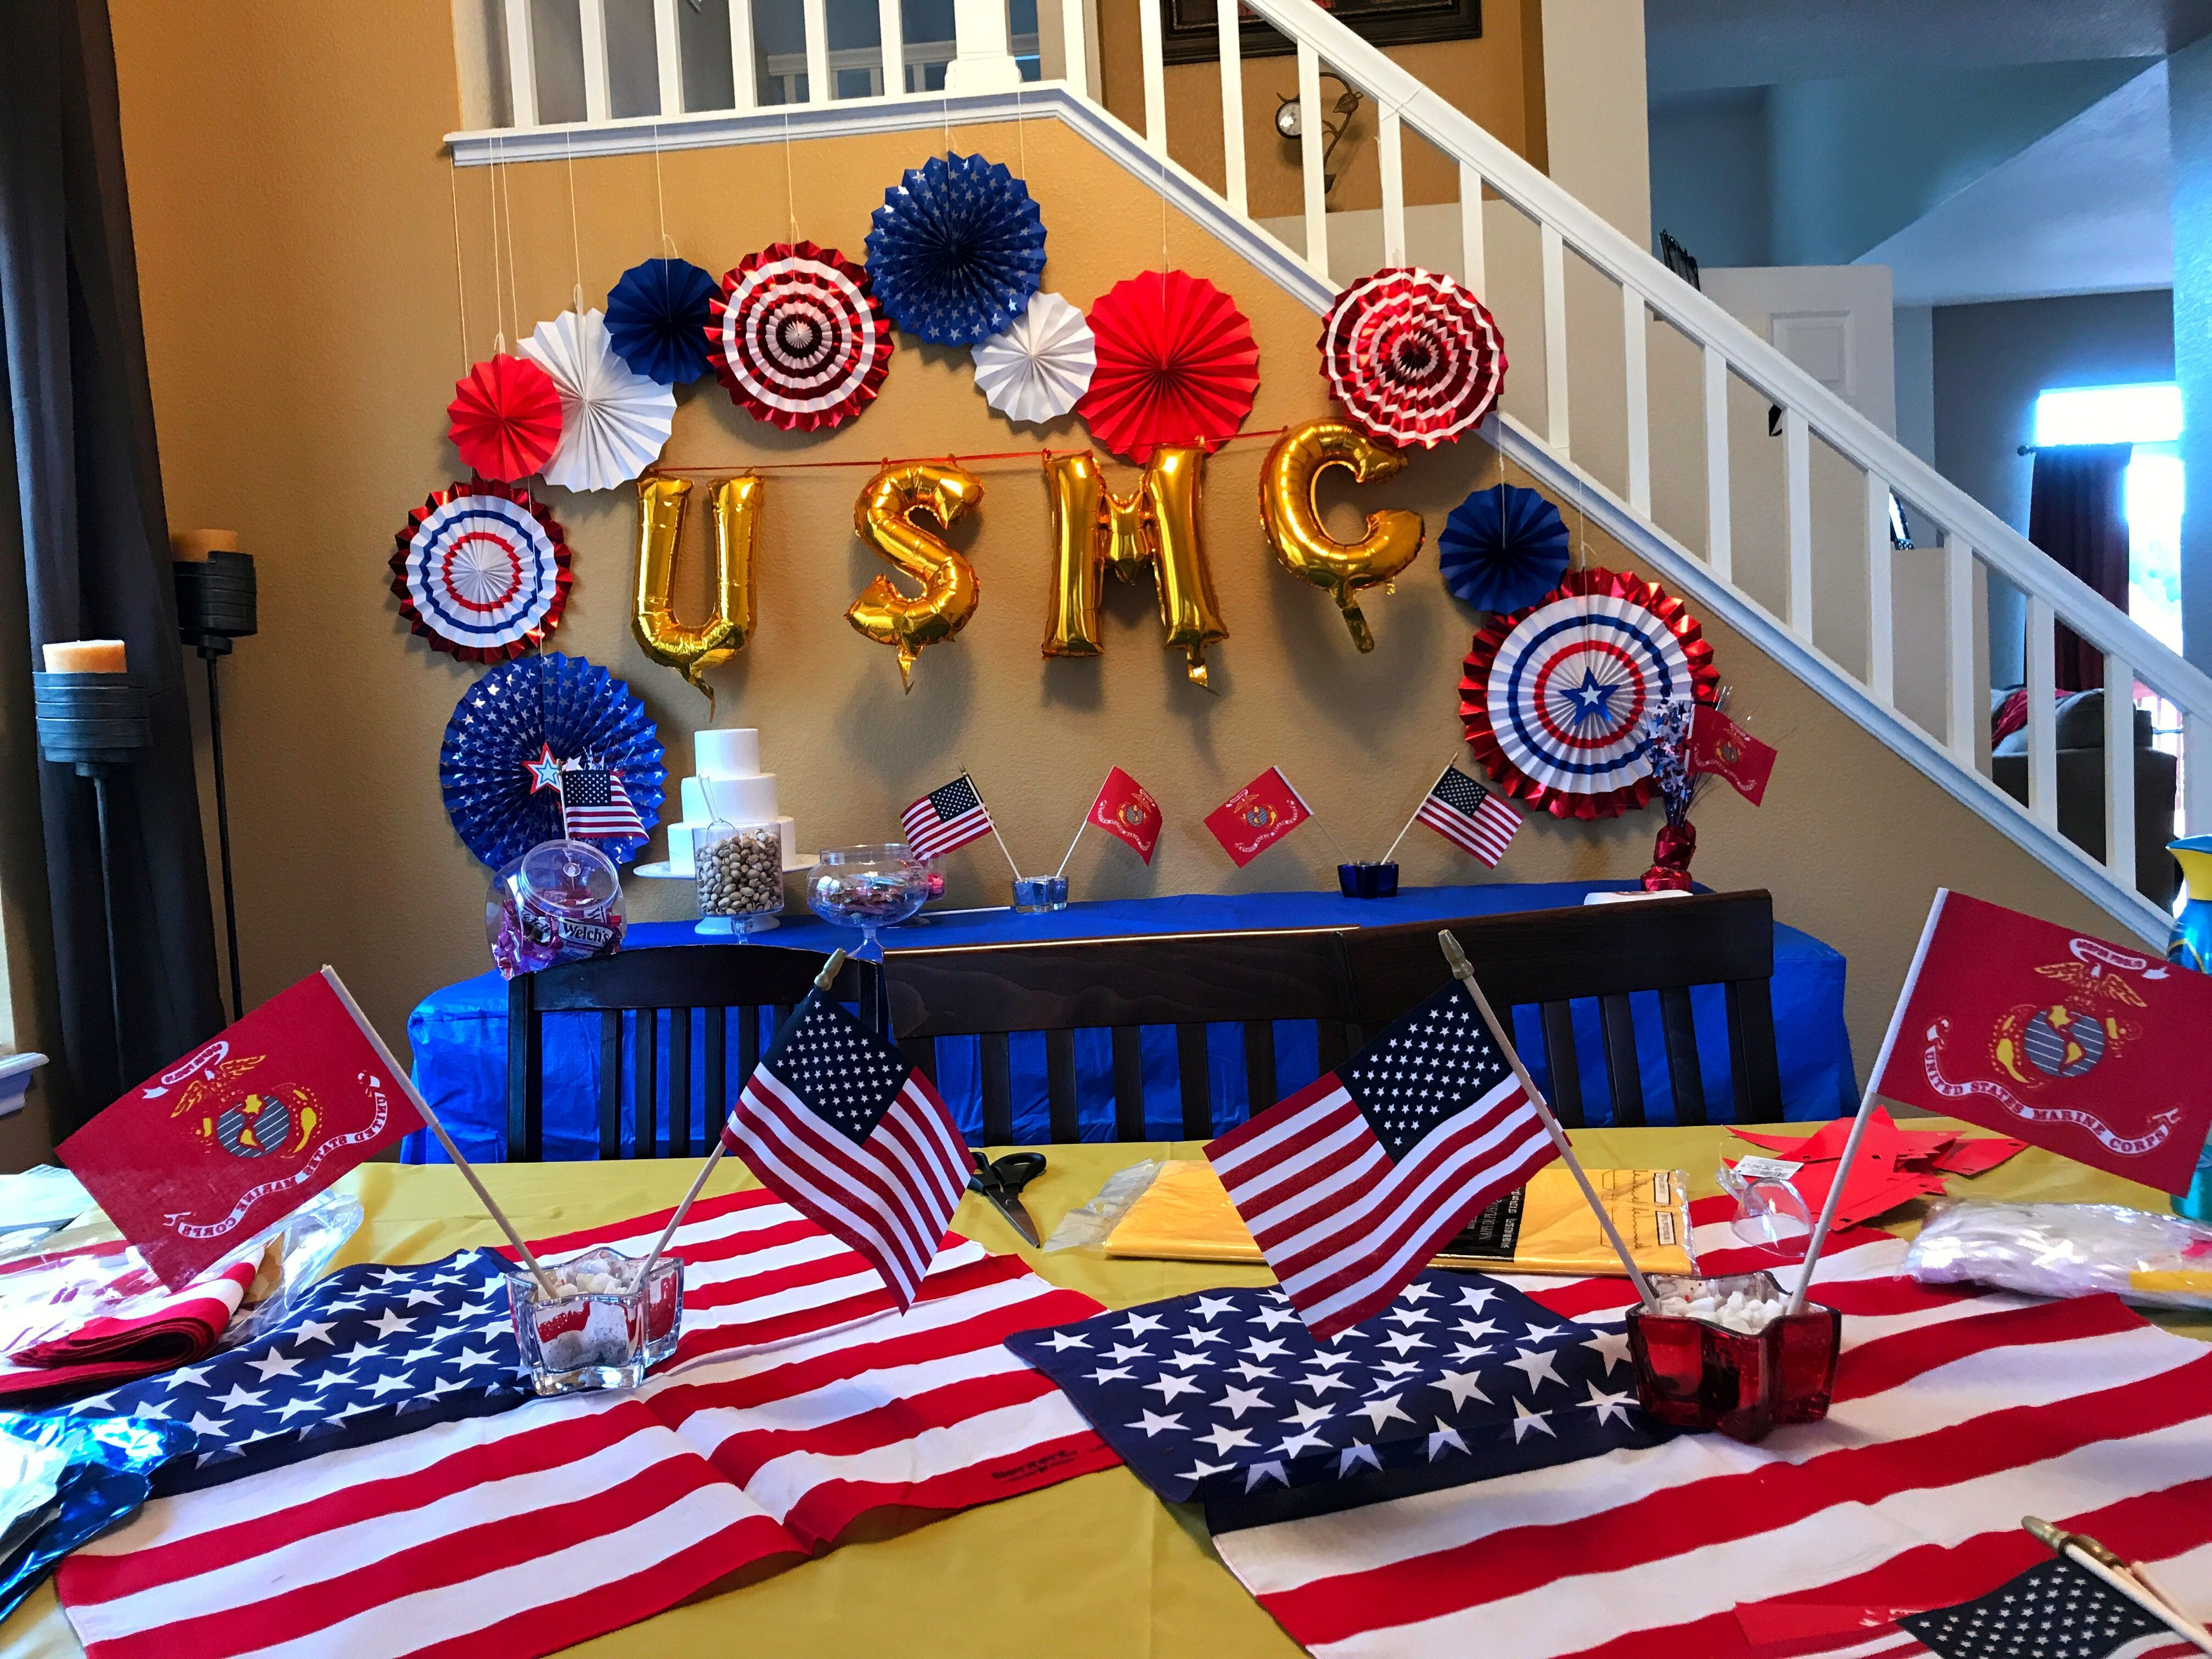 Pin by Shania Abbott on USMC Grad Party in 2020 Boot